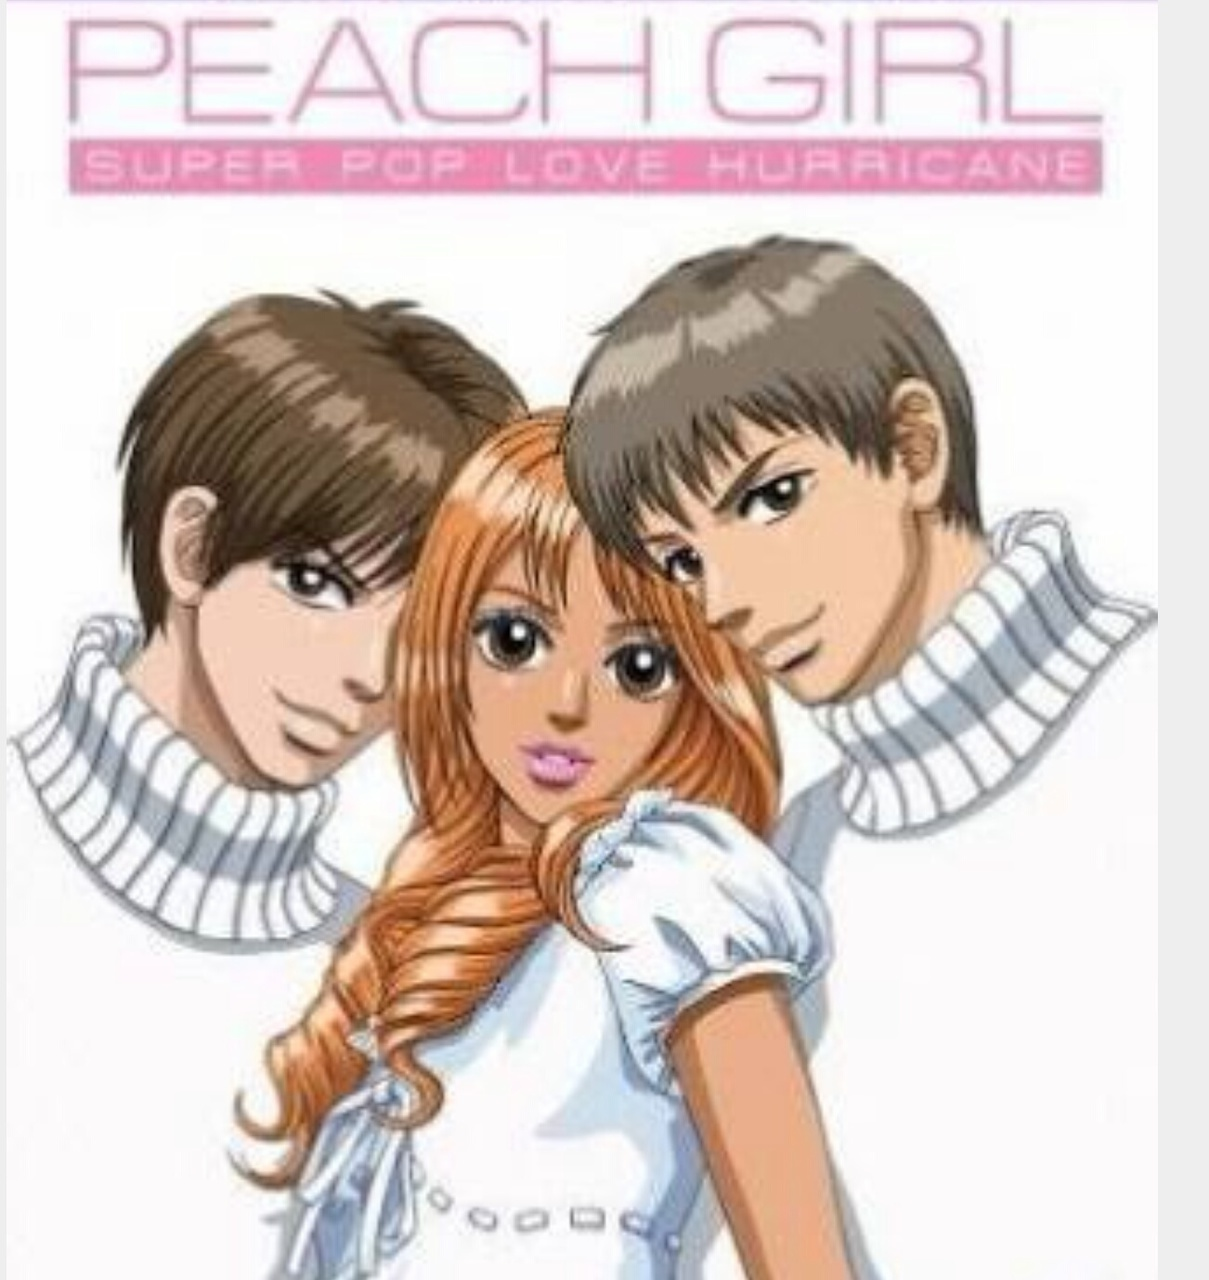 Peach girl shared by manga lover on we heart it